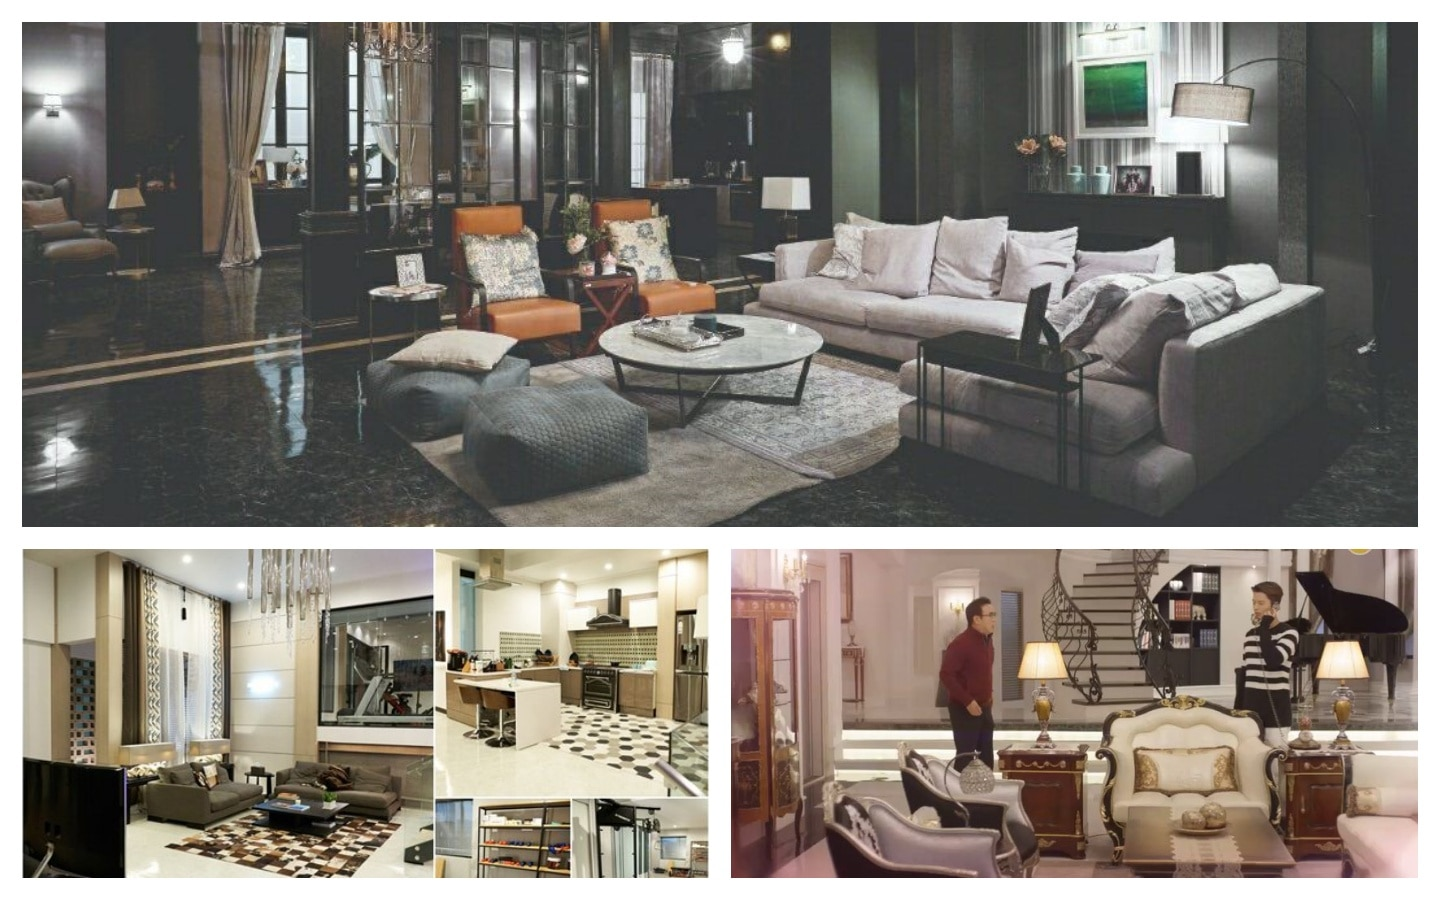 Design Lessons From These Stylish K-drama Homes